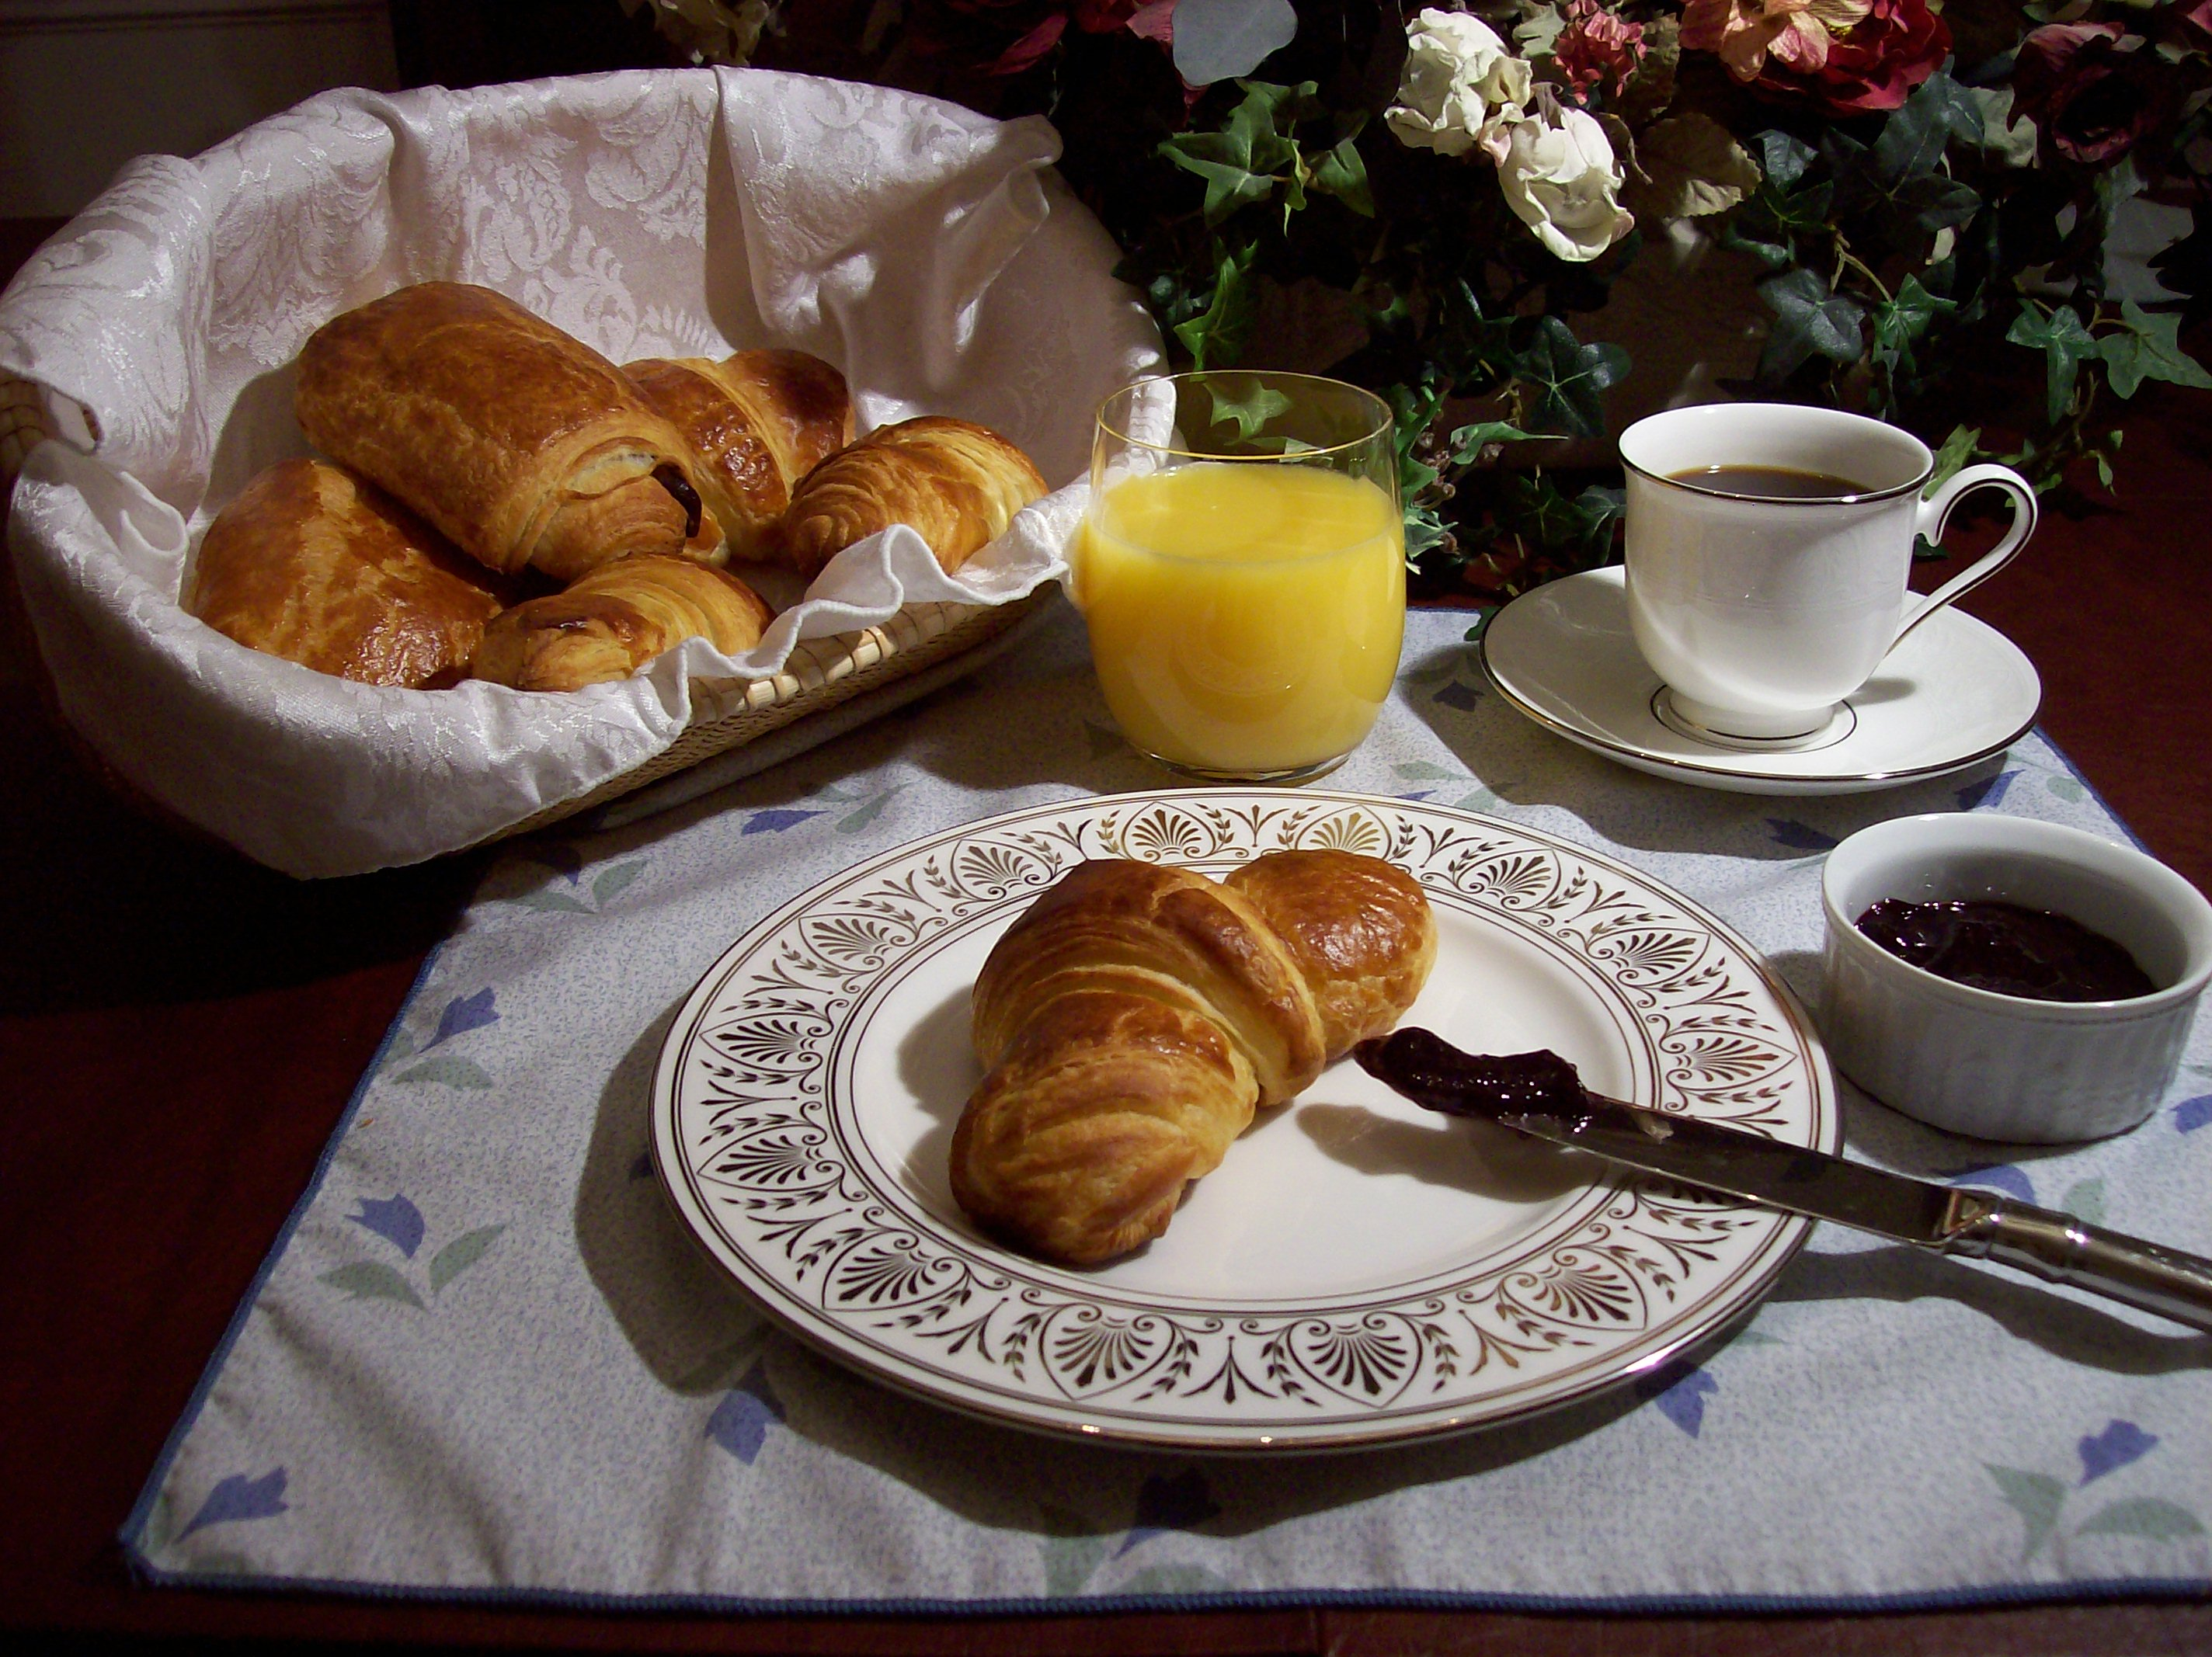 Croissants And Pain Au Chocolat Bread Cetera